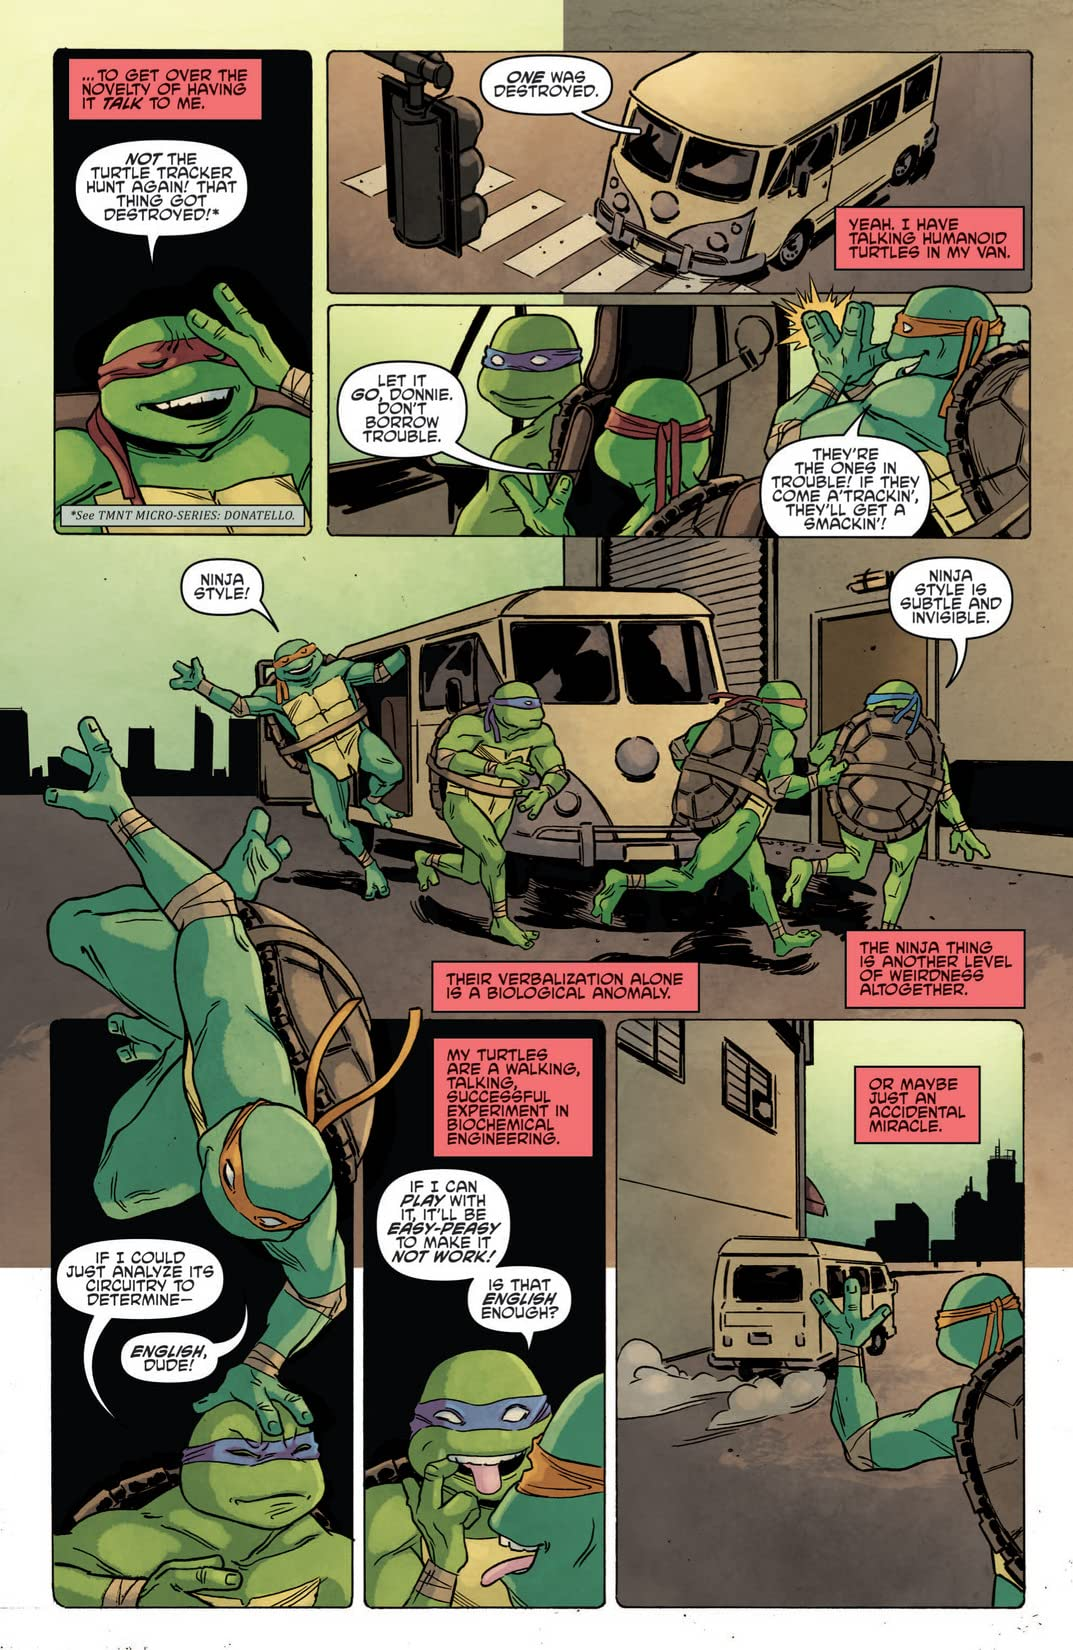 Teenage Mutant Ninja Turtles Micro Series #7: April